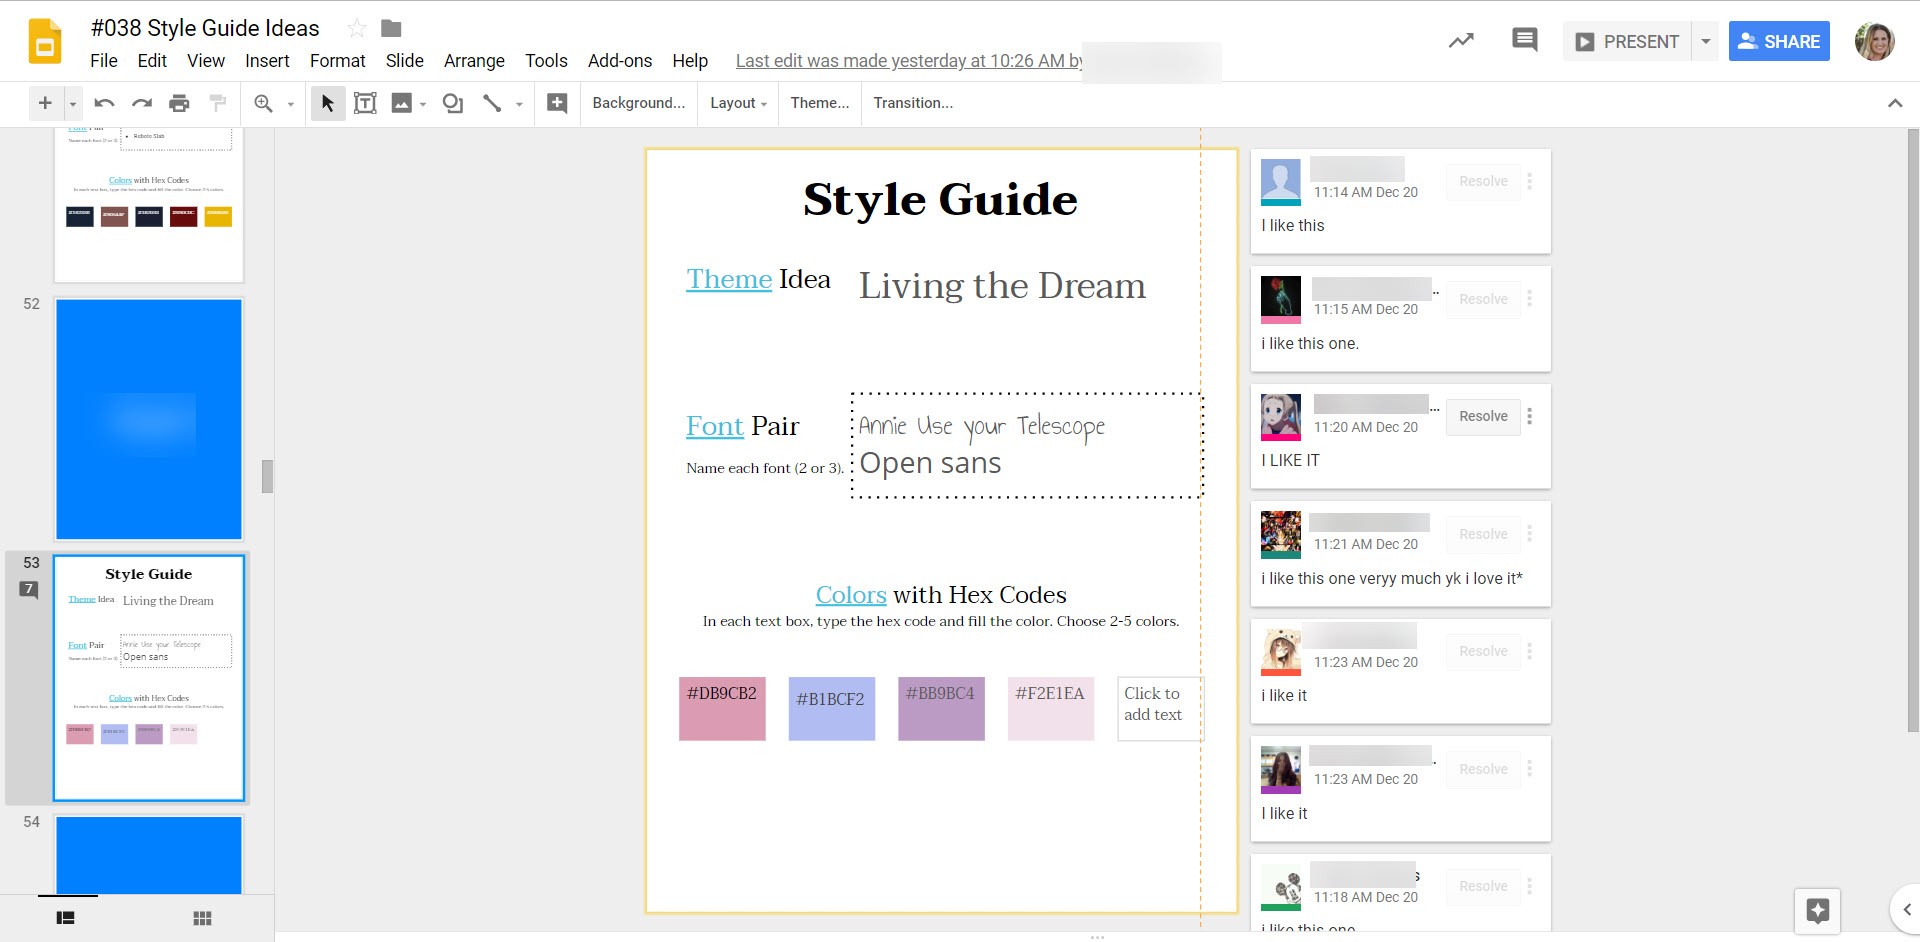 Style Guide Gallery Walk